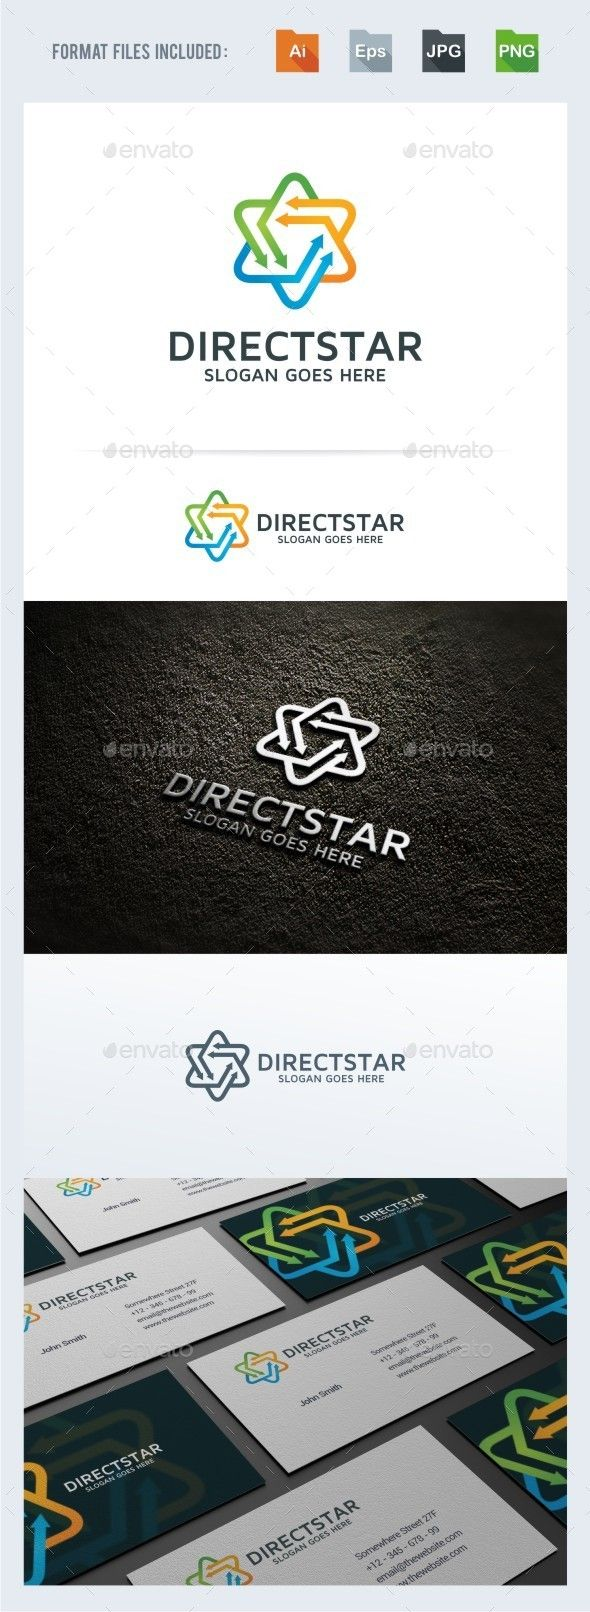 Download Free Graphicriver              Direct Star Logo Template            #abstract #advance #advantage #agency #arrow #assurance #business #communication #corporate #creativestudio #development #direction #economy #entertainment #fast #finance #forward #growth #industrial #management #marketing #media #movement #profit #progress #software #star #synergy #tech #technology